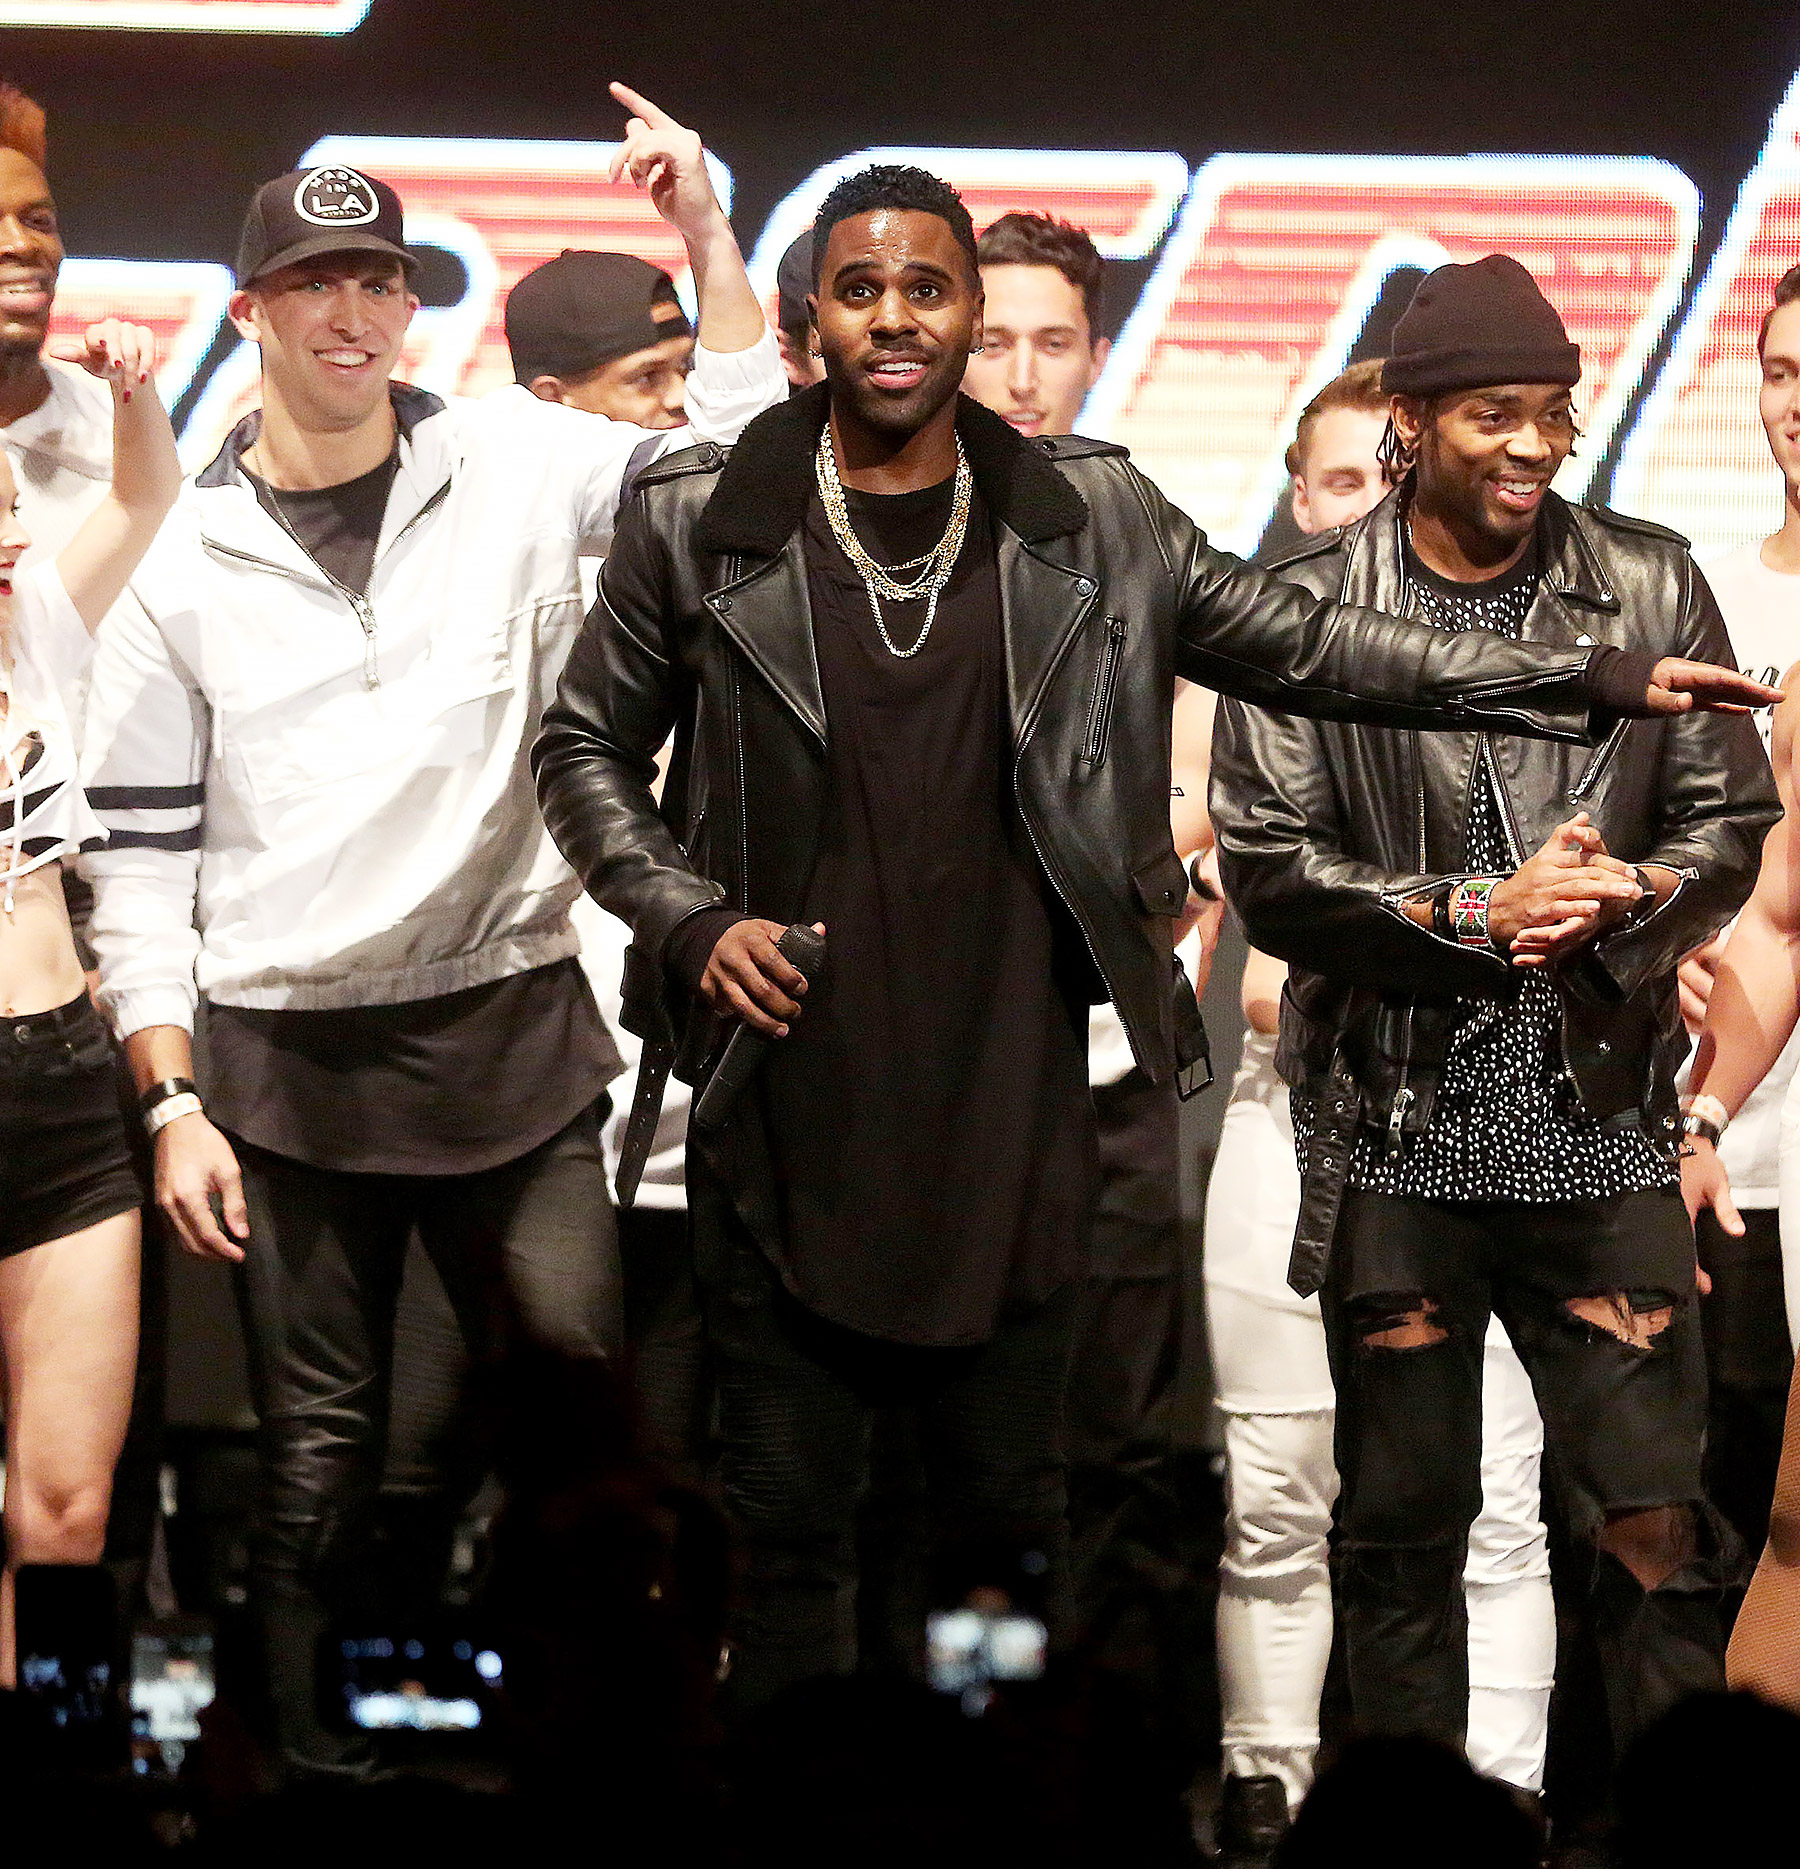 **EXCLUSIVE**  Photo Credit: MOVI Inc.  Date: January 29th 2018FOR GLOBAL SALES CALL (U.S) 310 739 4693 OR EMAIL contact@movi-inc.comSuprise! Jason Derulo takes to the stage alongside celebrity choreographer Matt Steffanina to bust some moves at The Carn